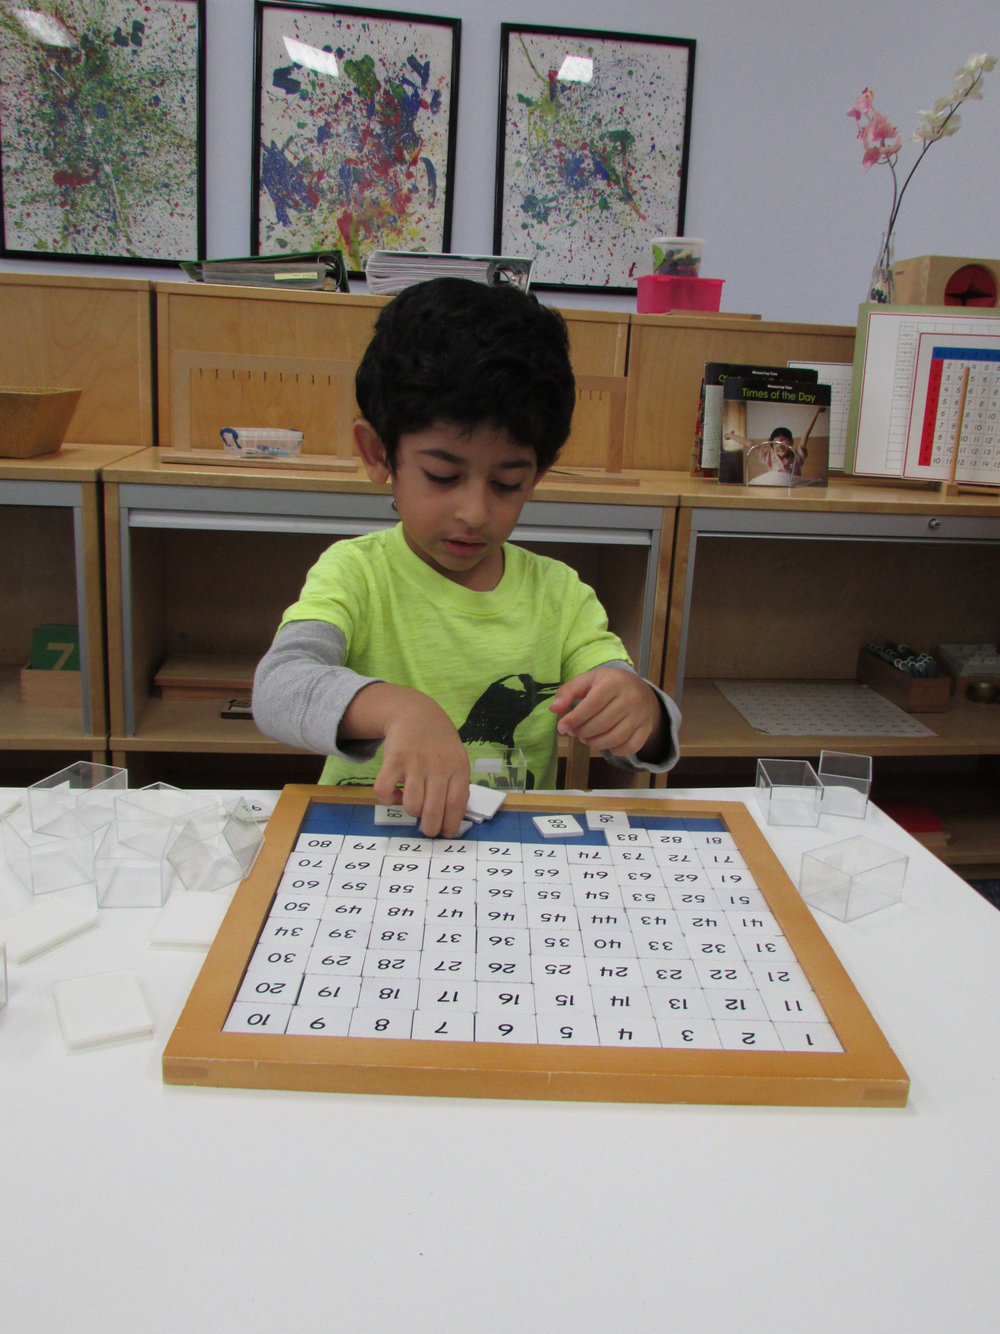 The Hundred Board, with its variety of extensions, is one of the many materials in the Primary 3 classroom that the students use to practicing linear counting.